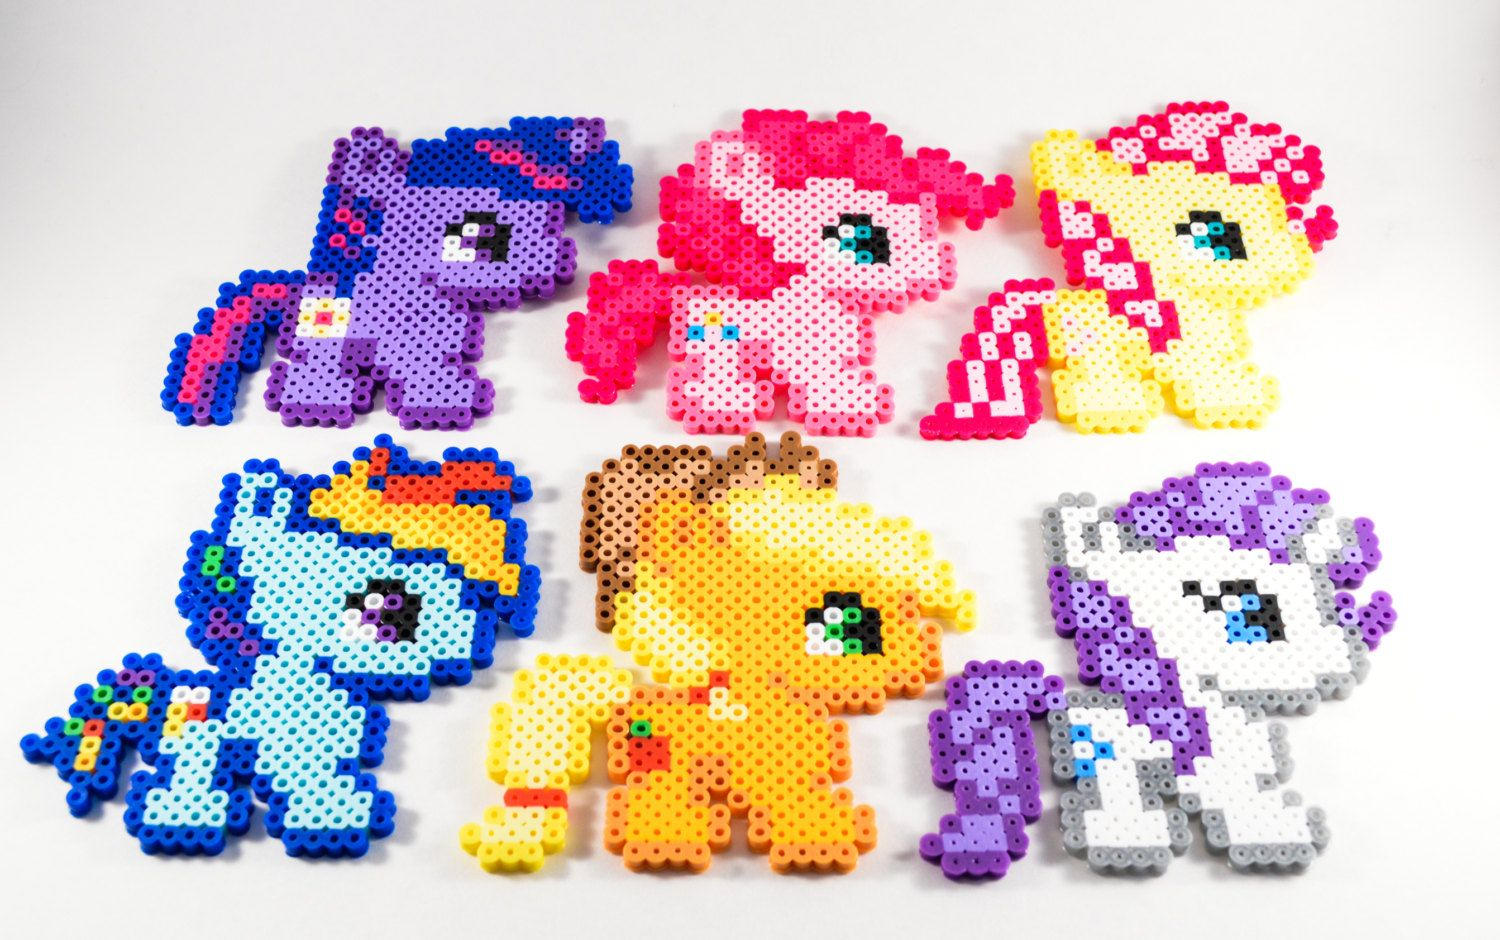 Melty Beads My Little Pony Wwwbilderbestecom